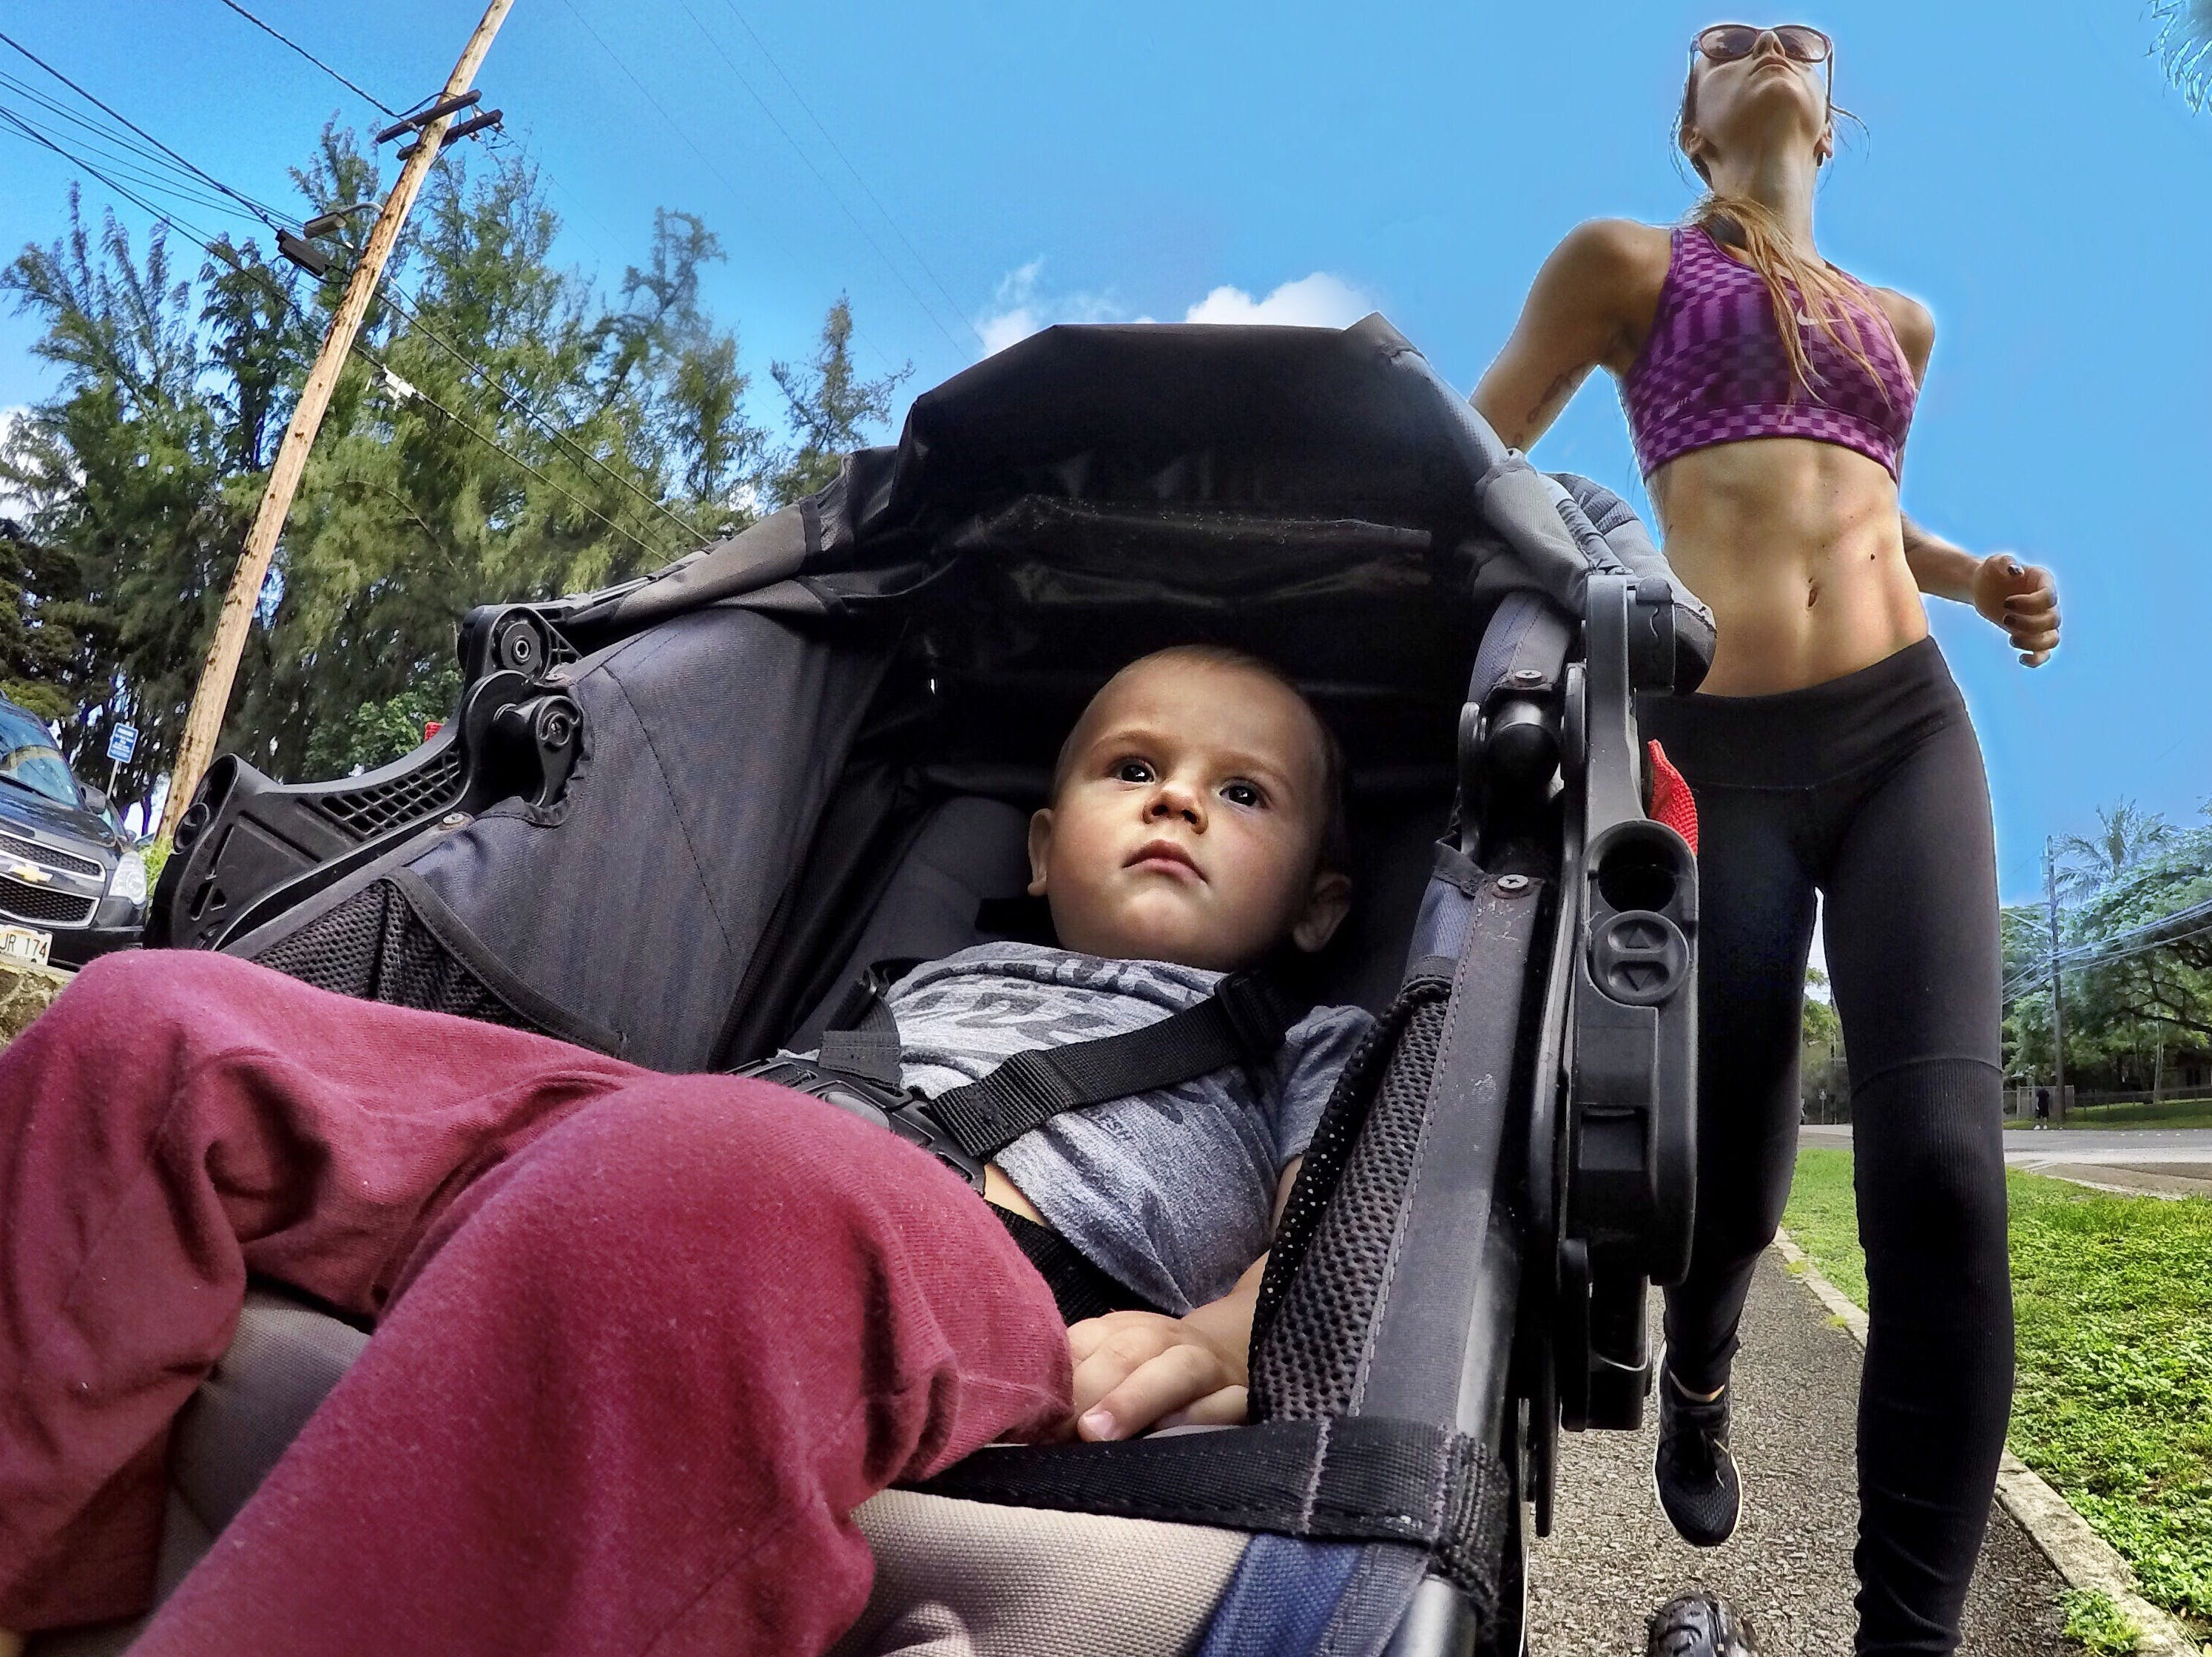 fit mom running with her kid in a stroller